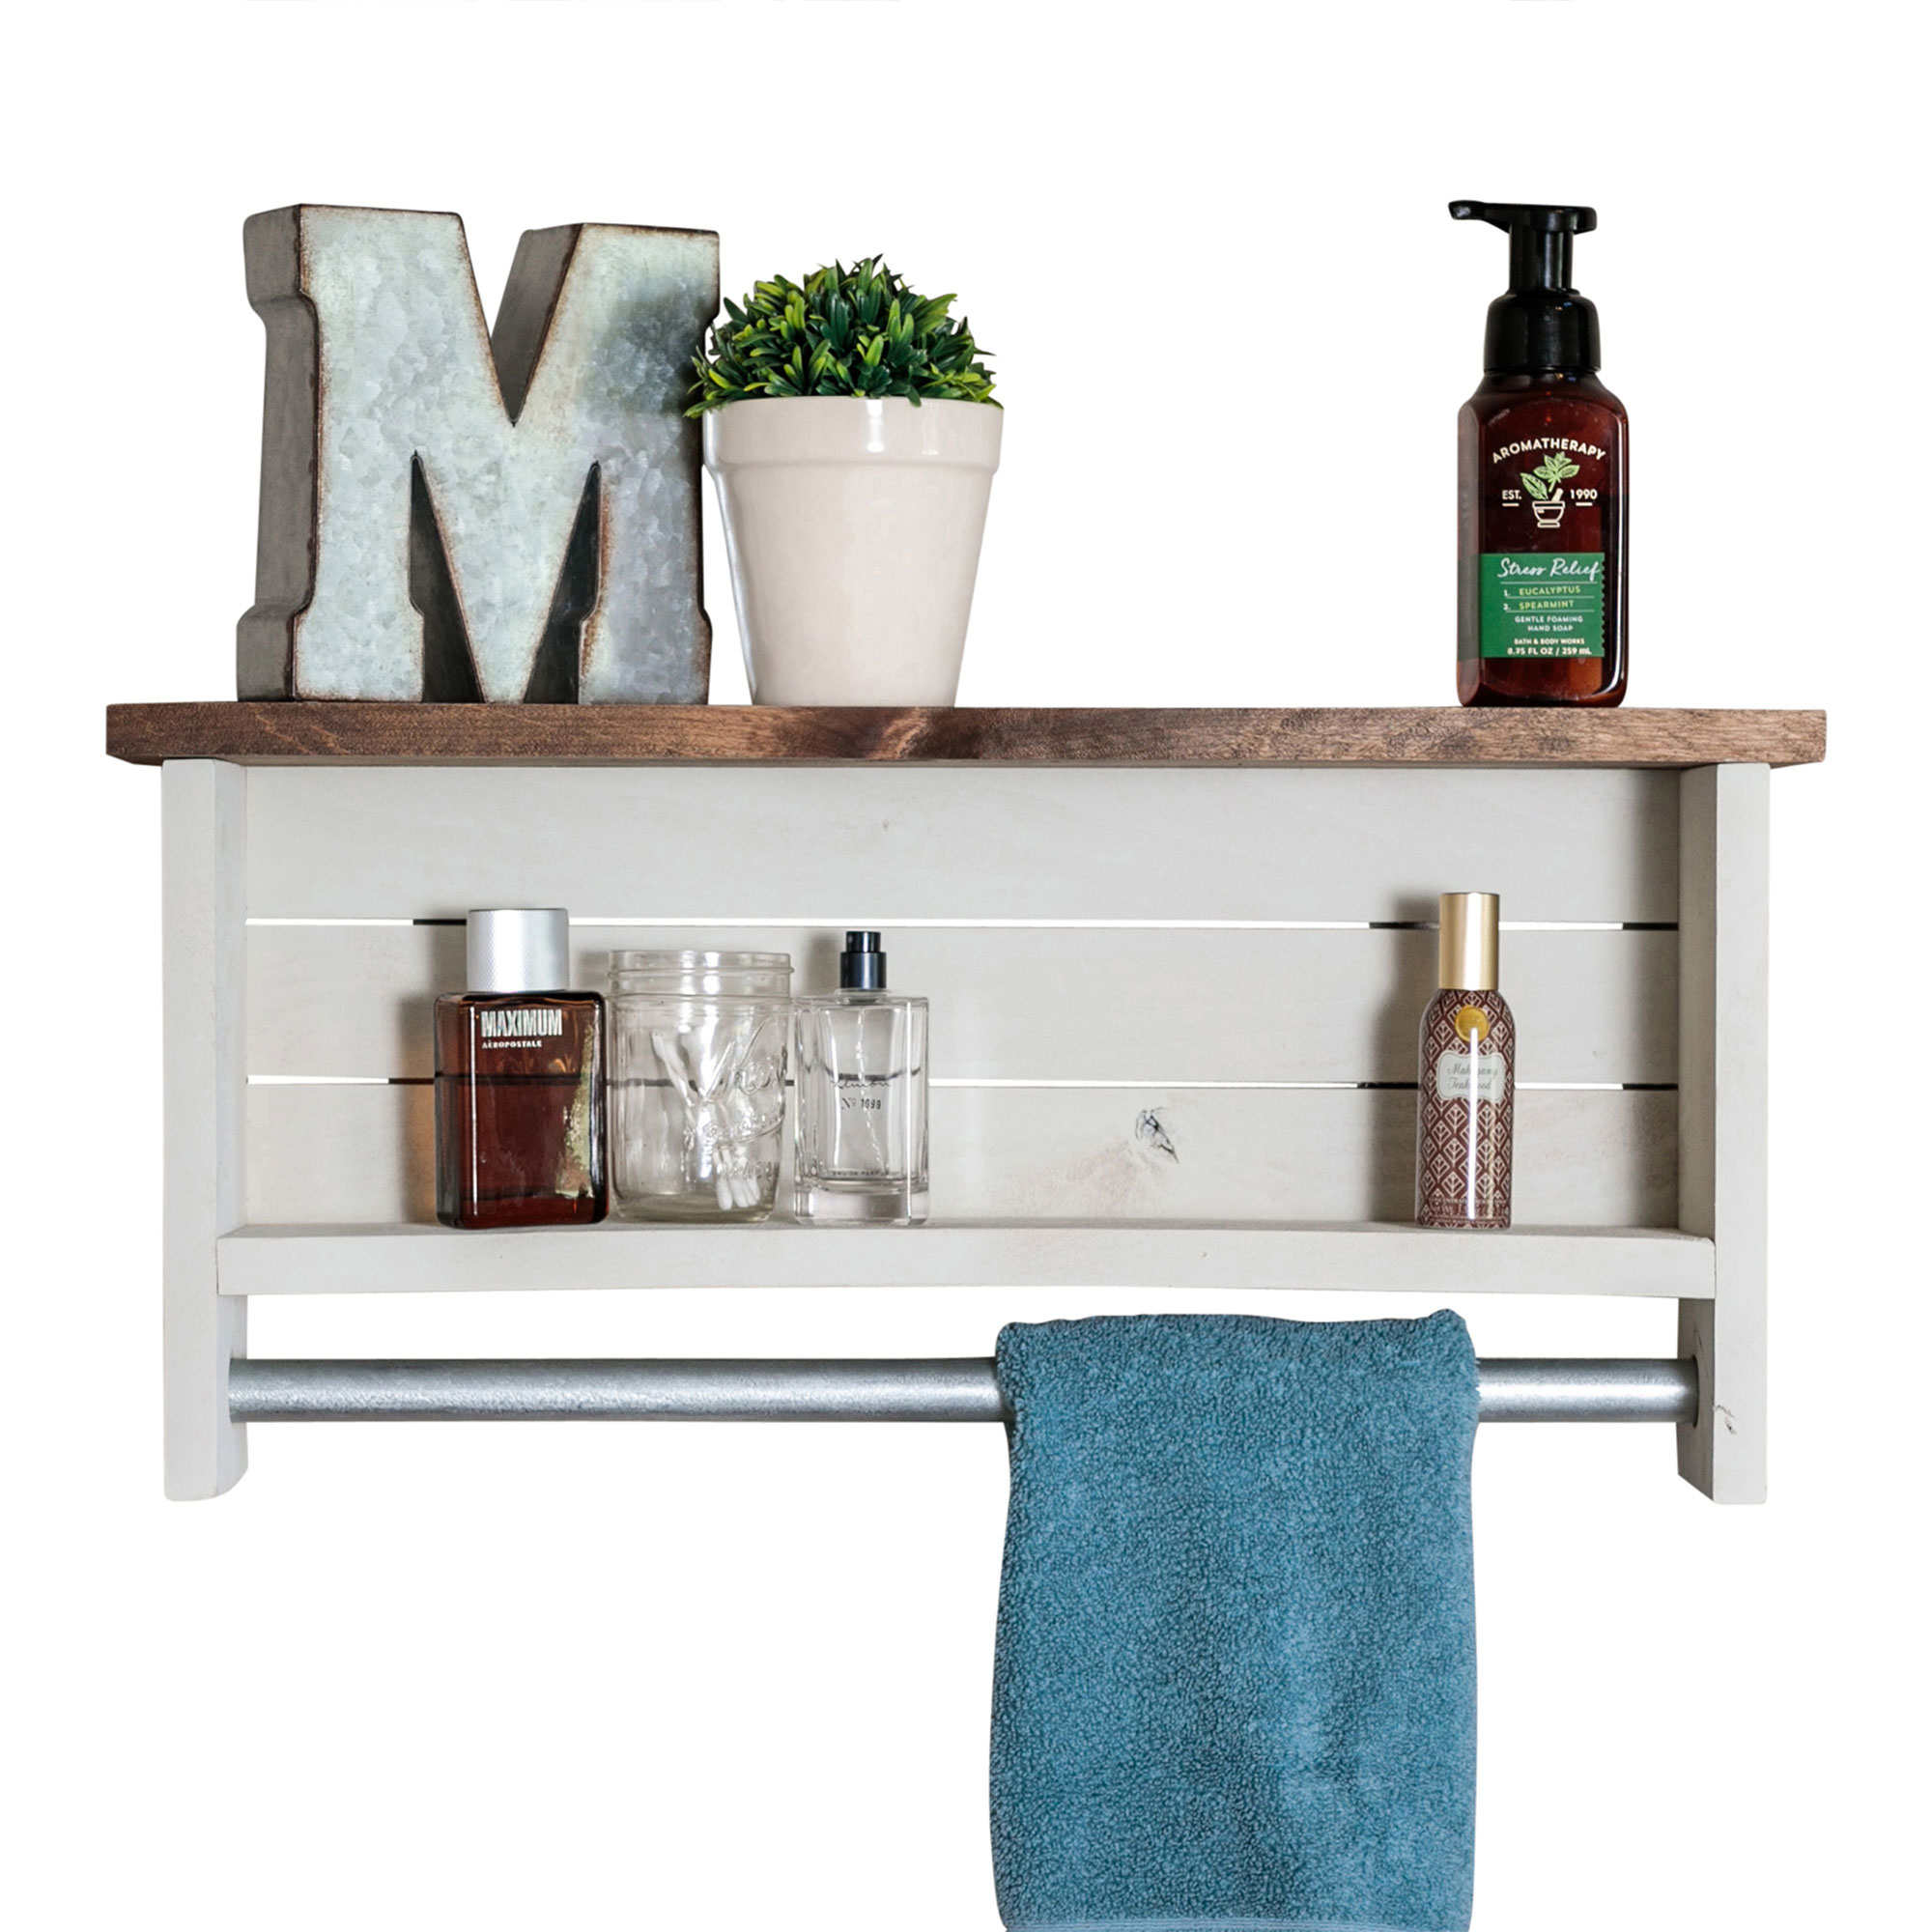 Bathroom Shelf With Towel Bar Whitewash Drakestone Designs